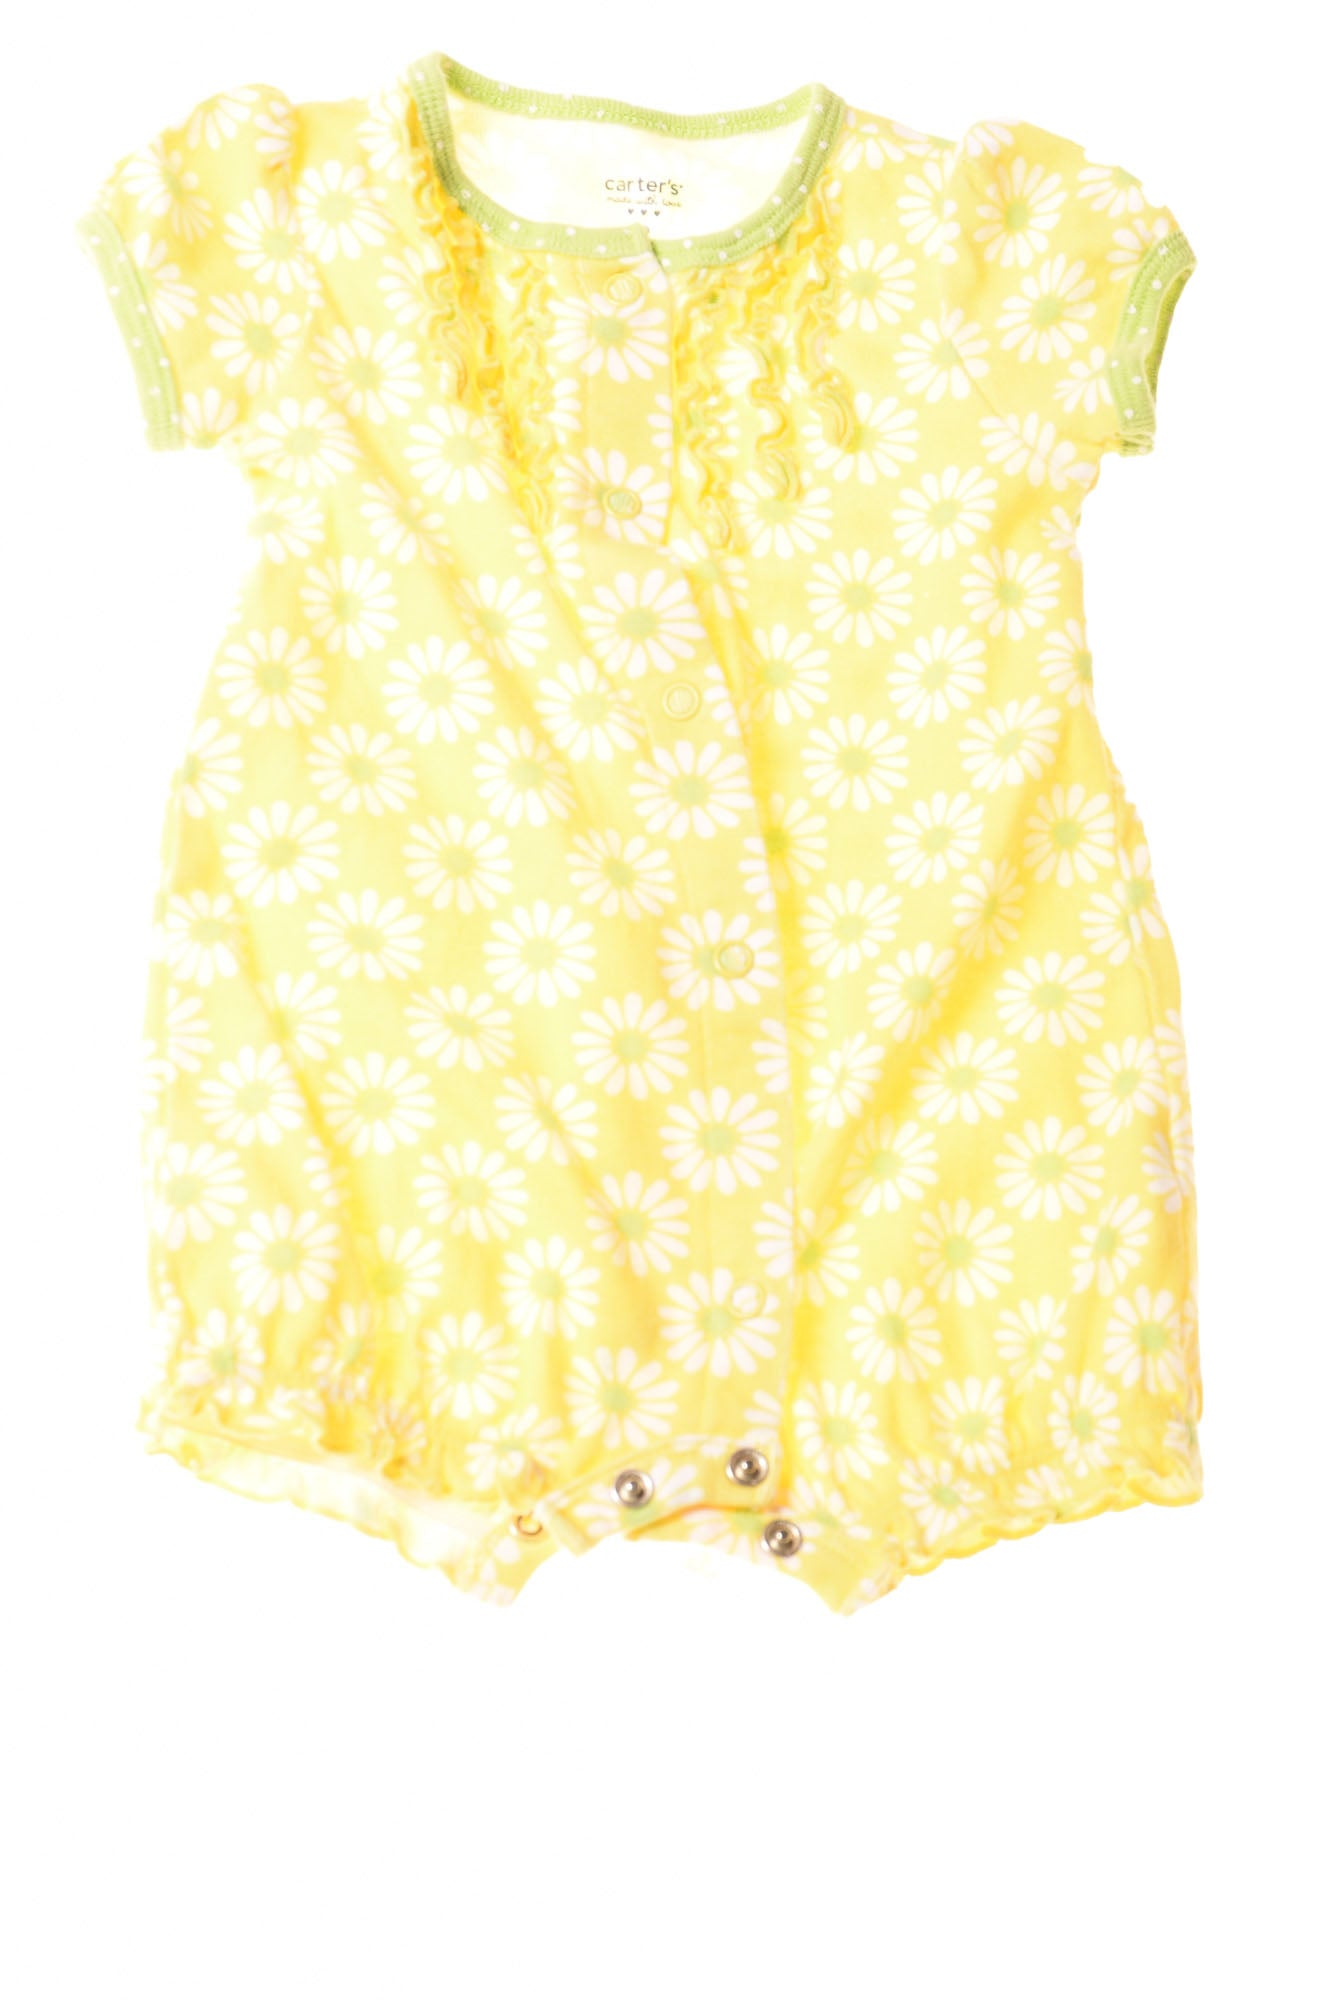 1e2a6ed2ad USED Carter's Baby Girl's Romper 3 Months Yellow / Floral - Village ...